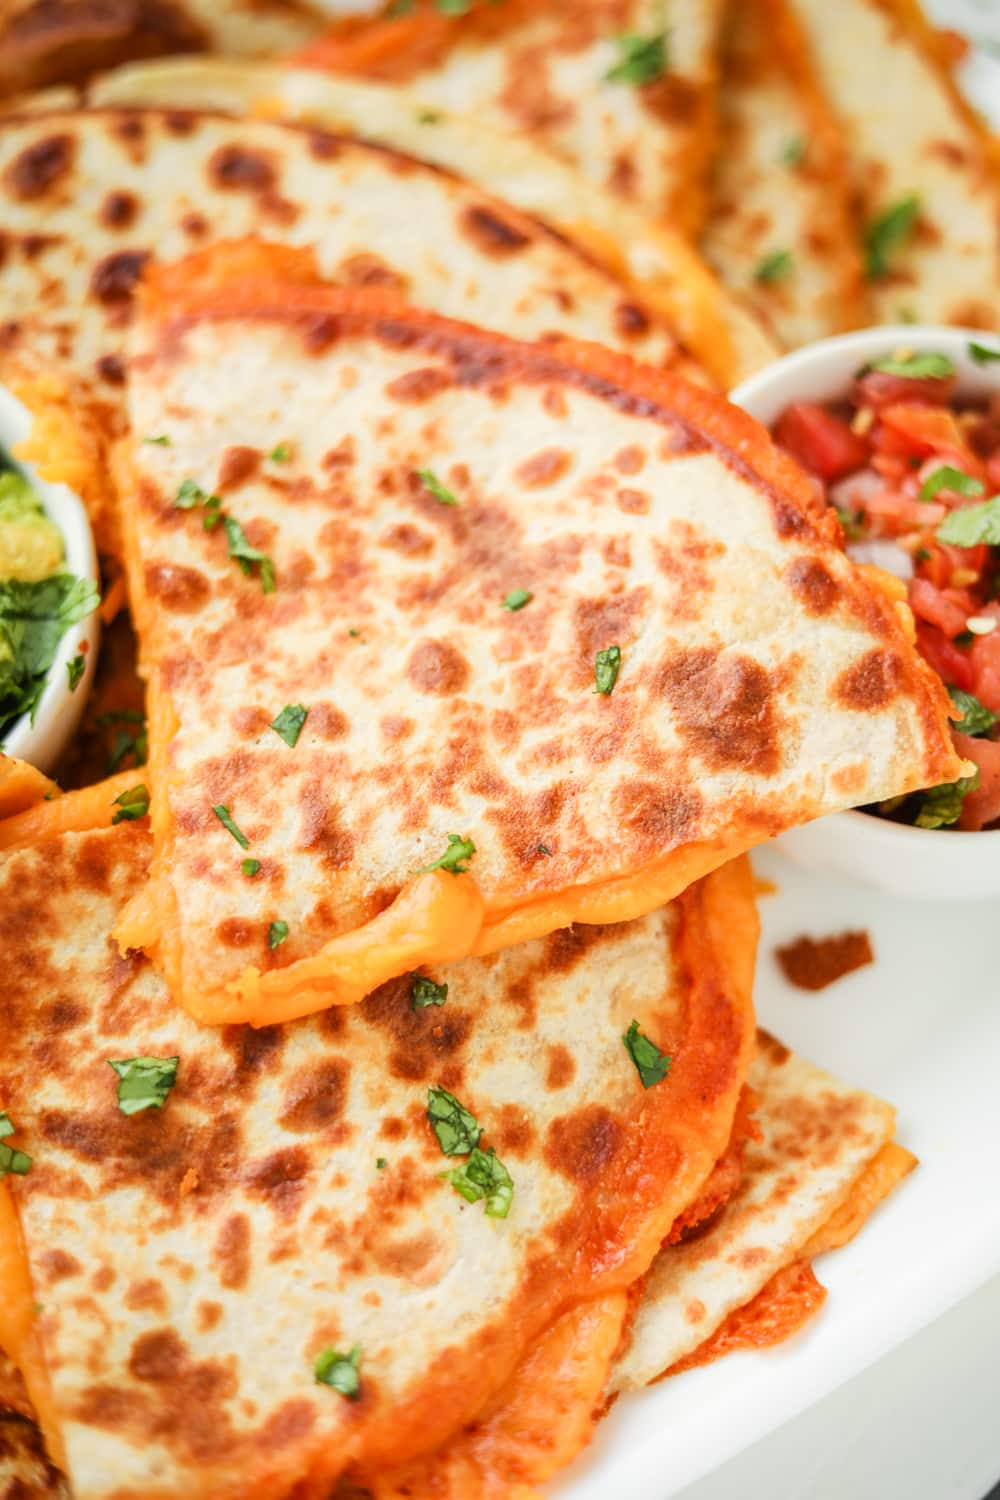 Quesadillas filled with cheese.